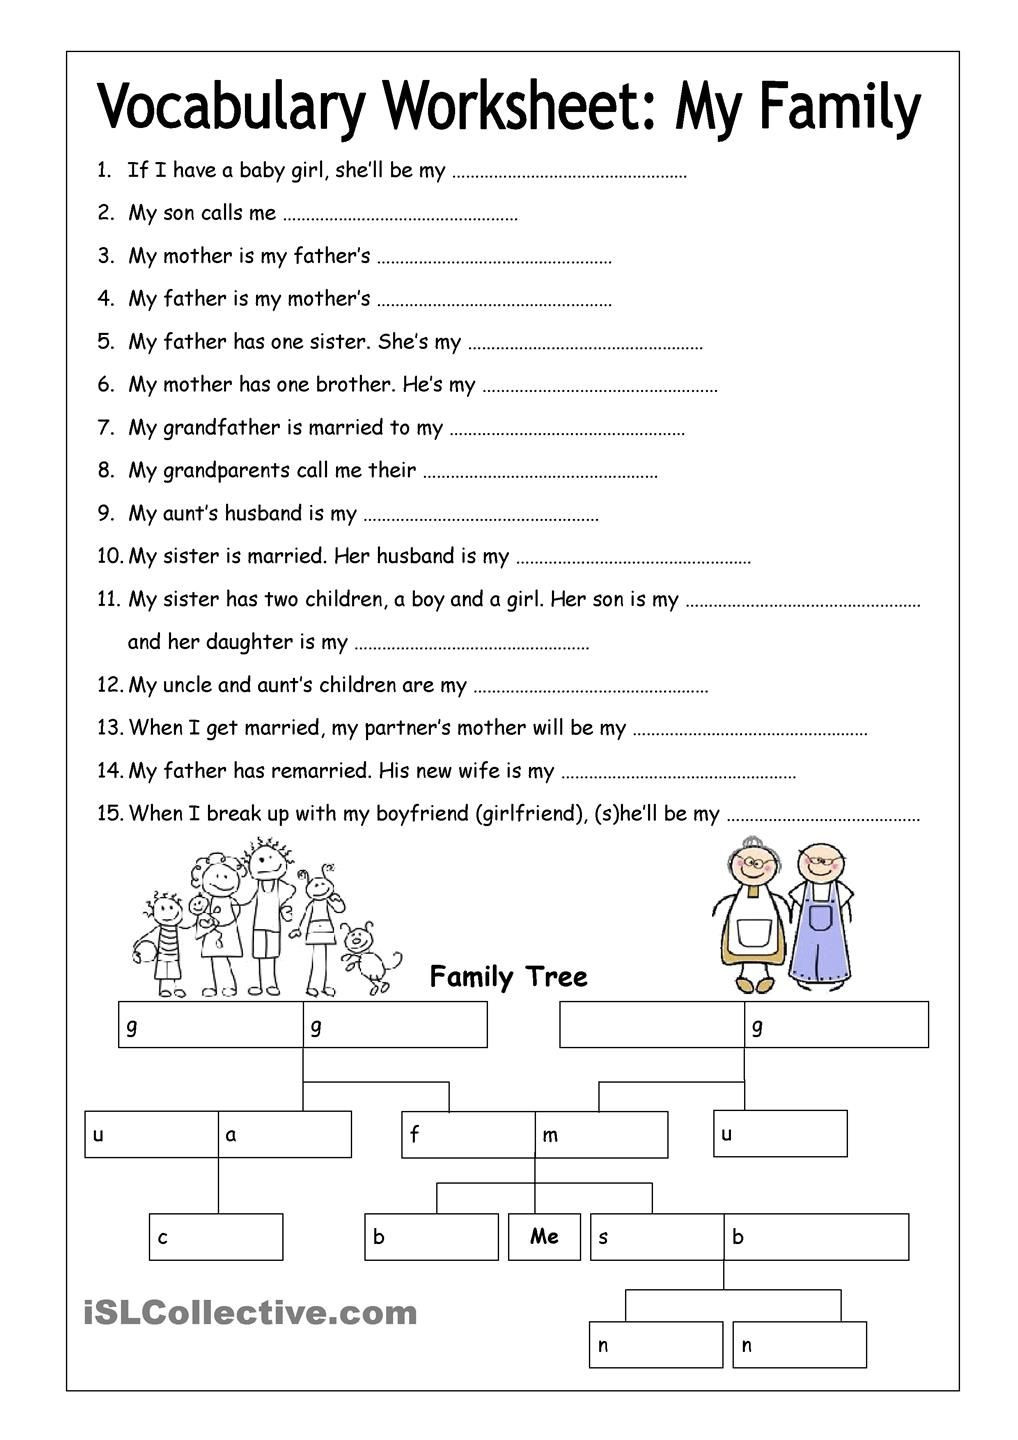 8th Grade Vocabulary Worksheets Vocabulary Worksheet My Family Medium